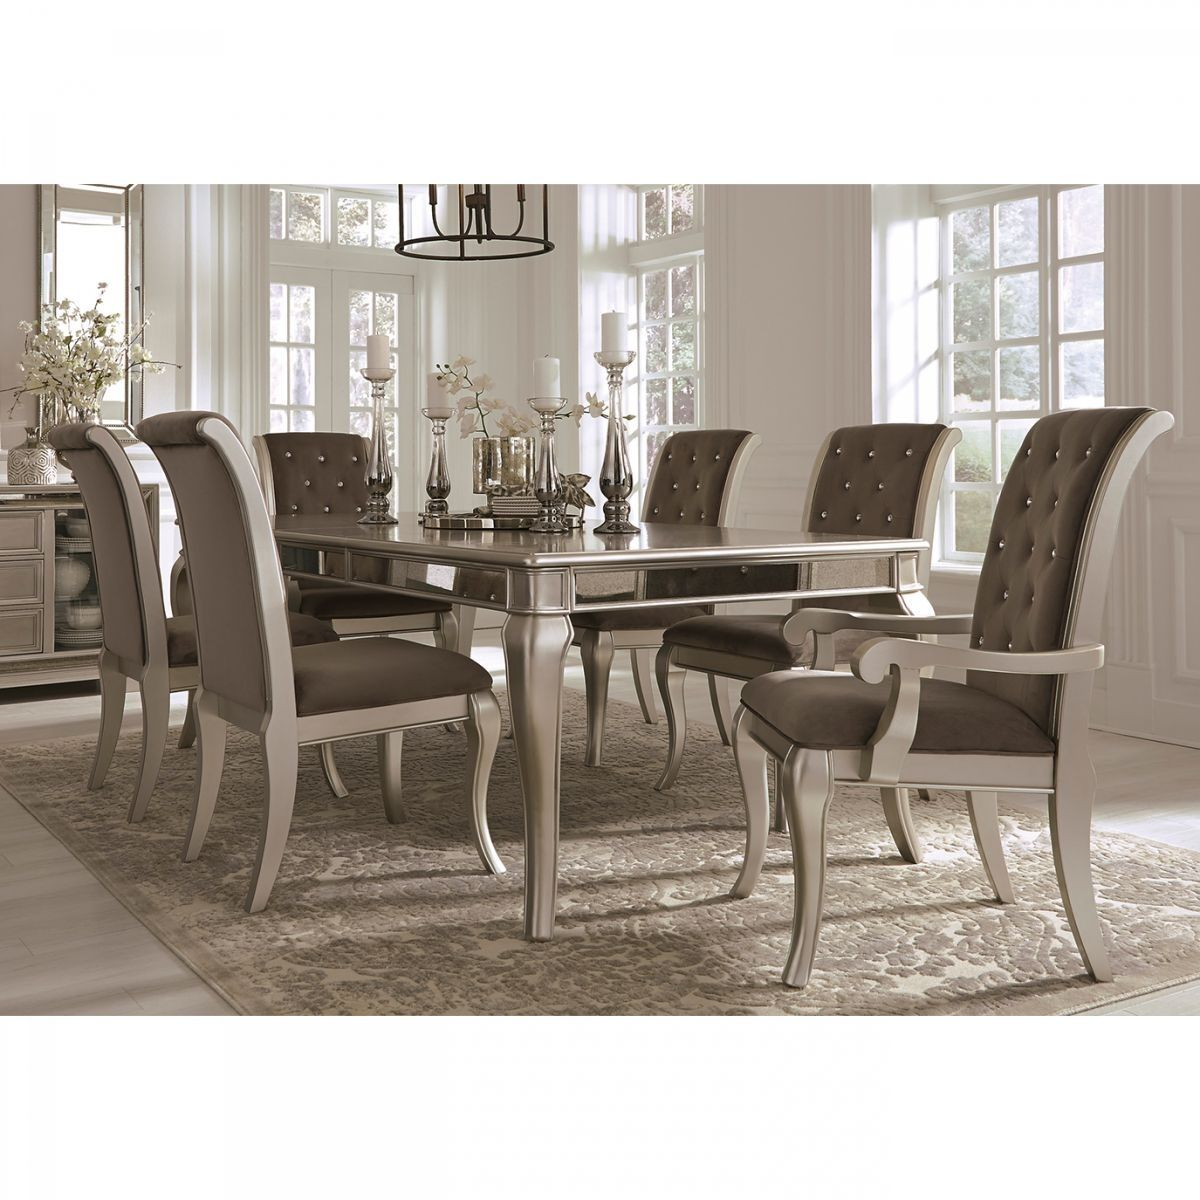 Give your house a new, fresh look with this sim. Badcock & More | Birlanny Silver 7 PC Dining Room | Dining ...